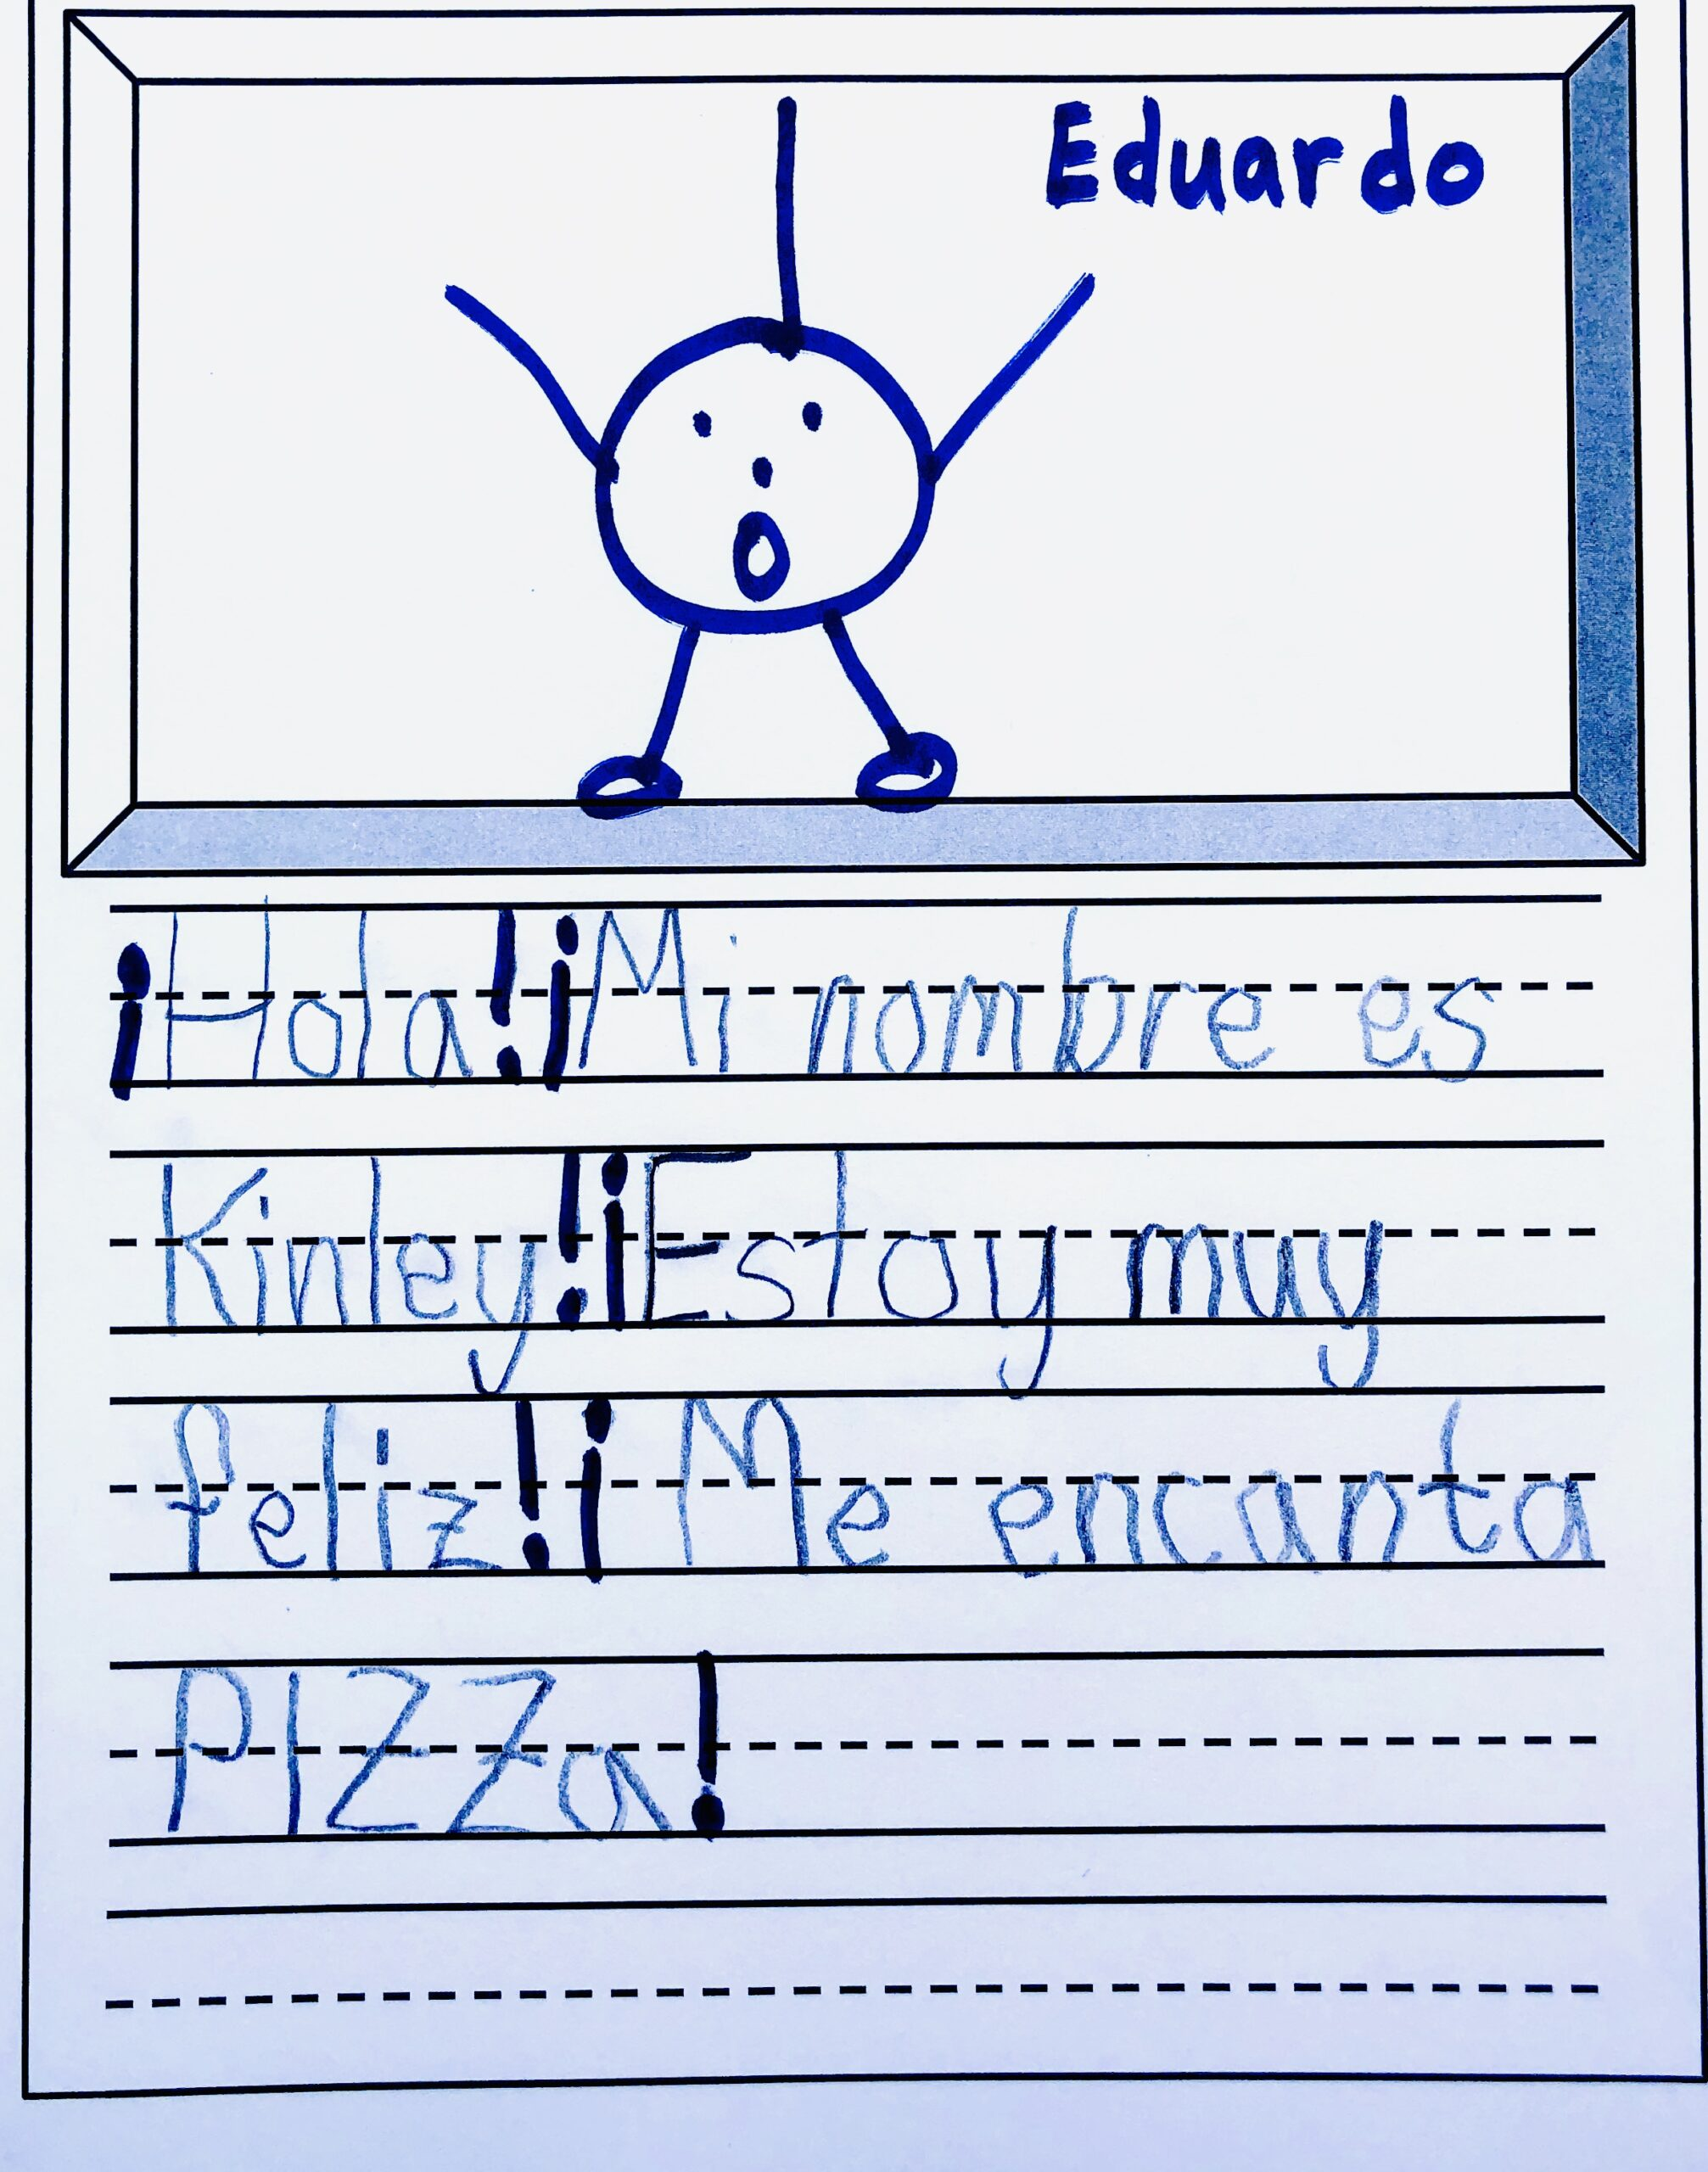 From the Spanish short story, Eduardo the exclamation point!